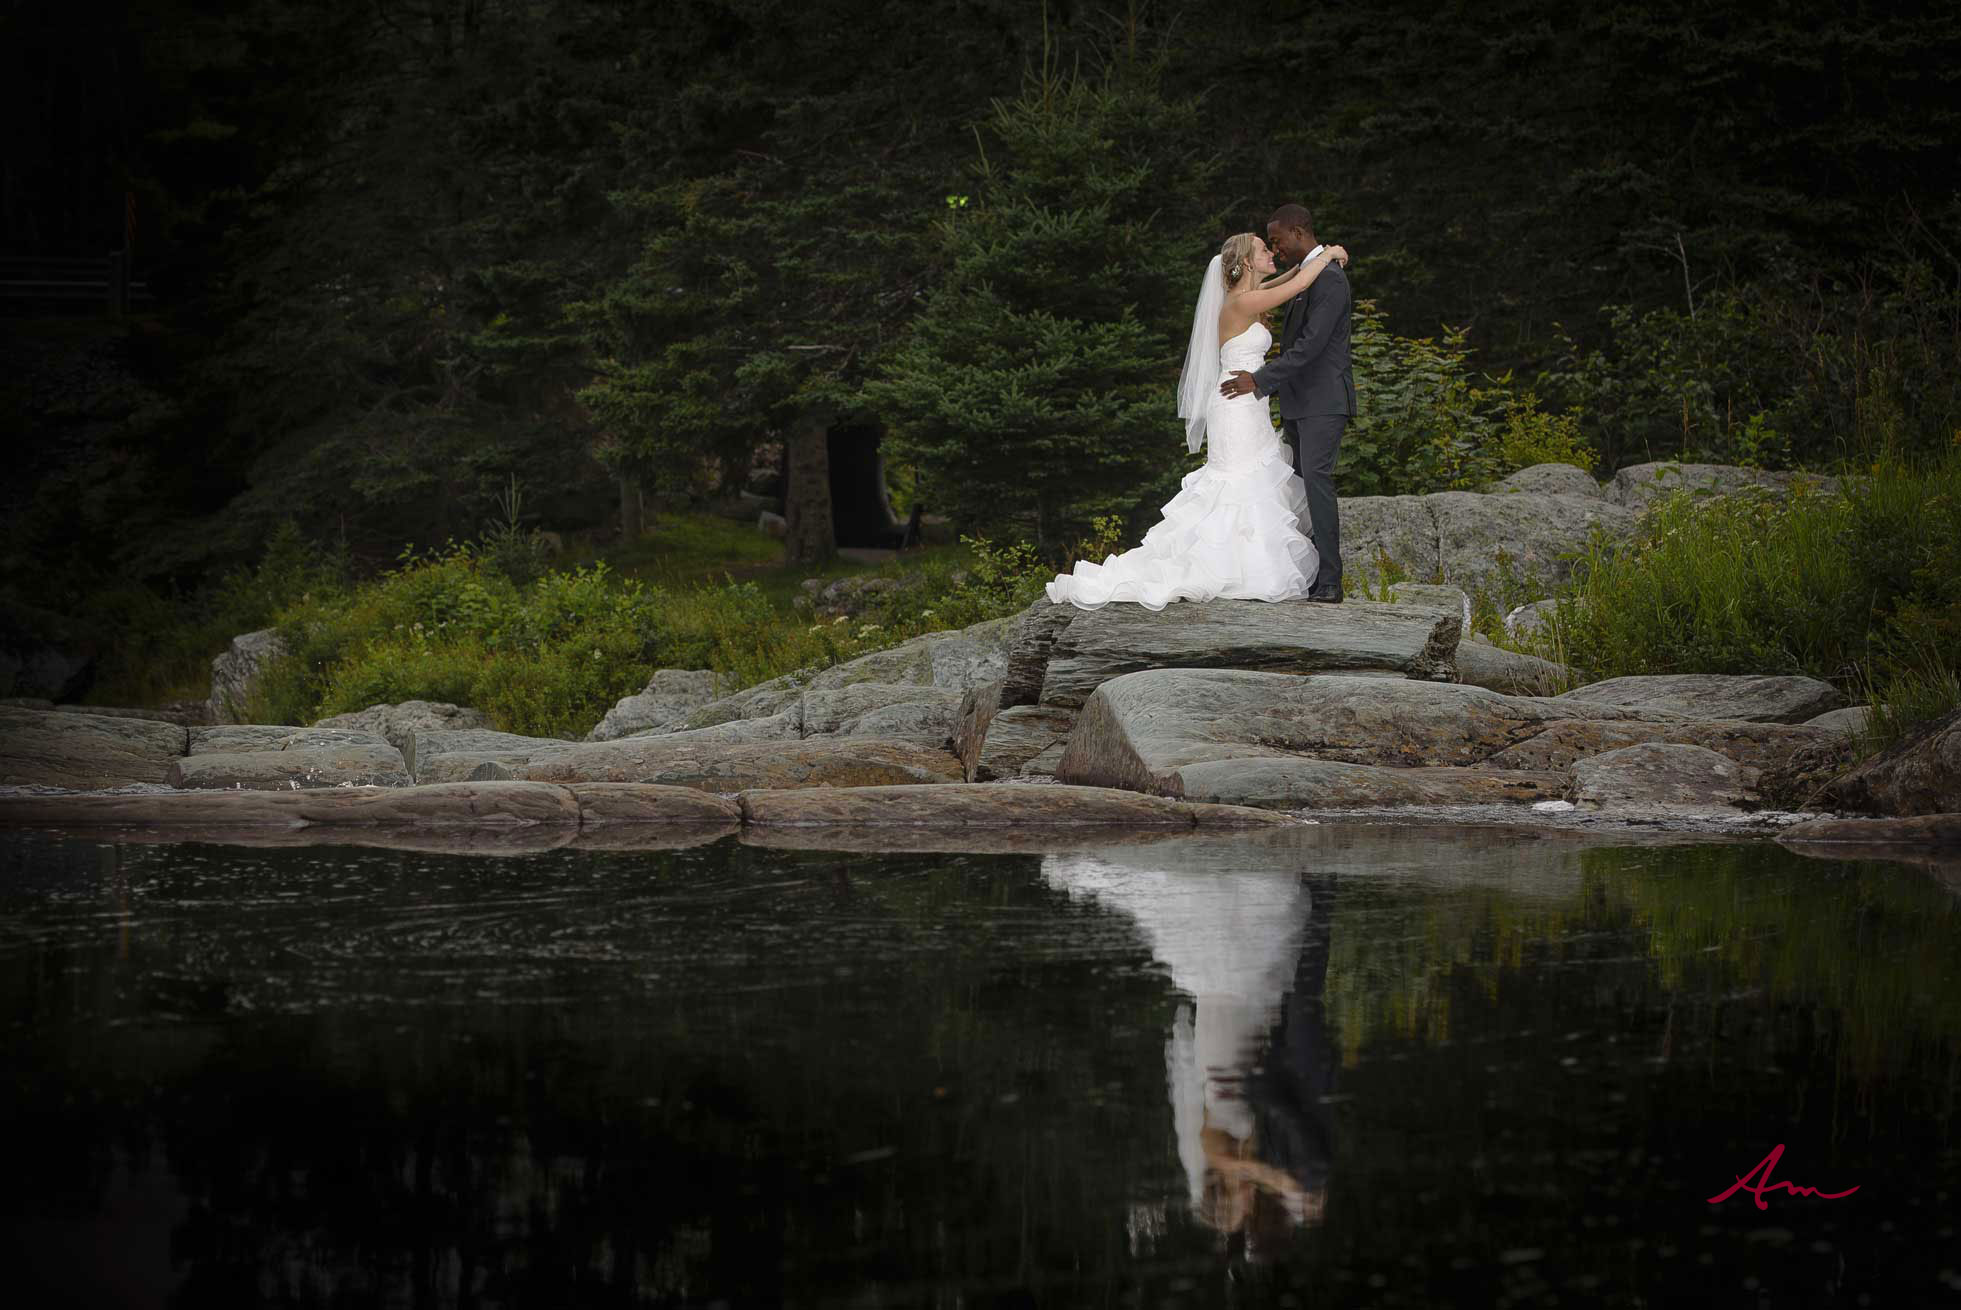 Liscombe-wedding-bride-groom-river.jpg